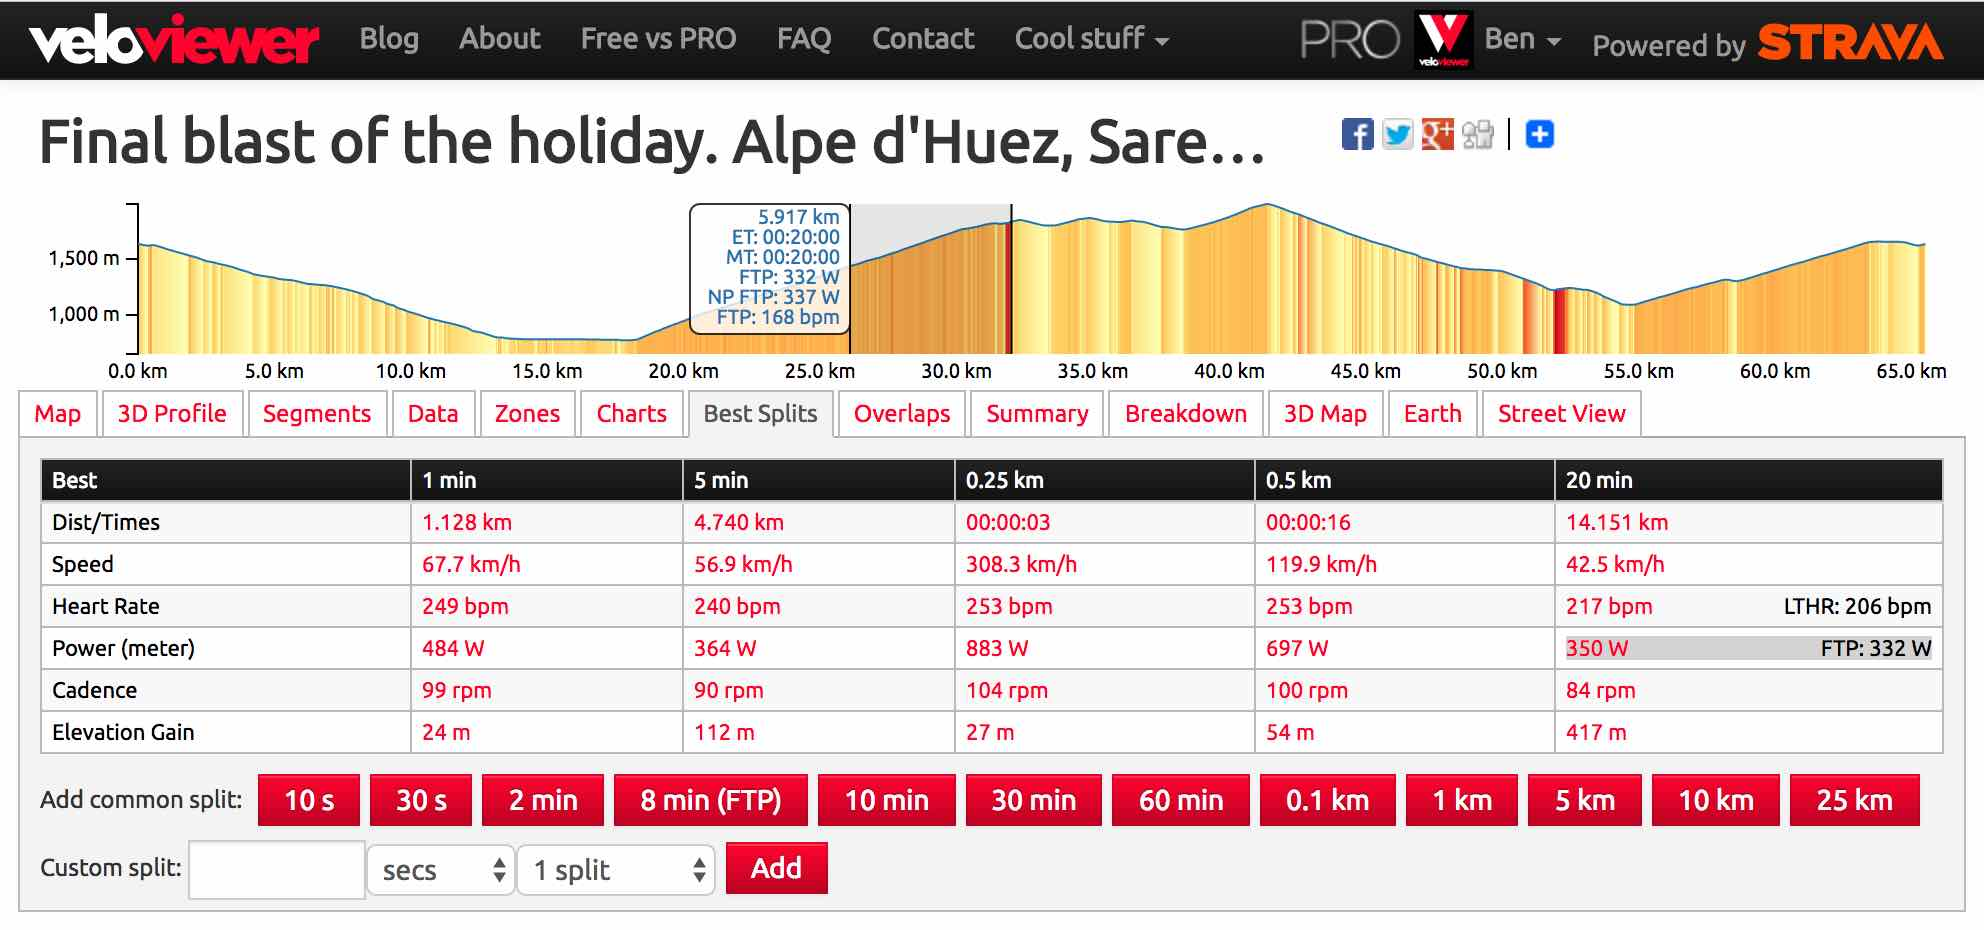 Getting your powerheart rate ftp and normalised power from your best splits nvjuhfo Image collections